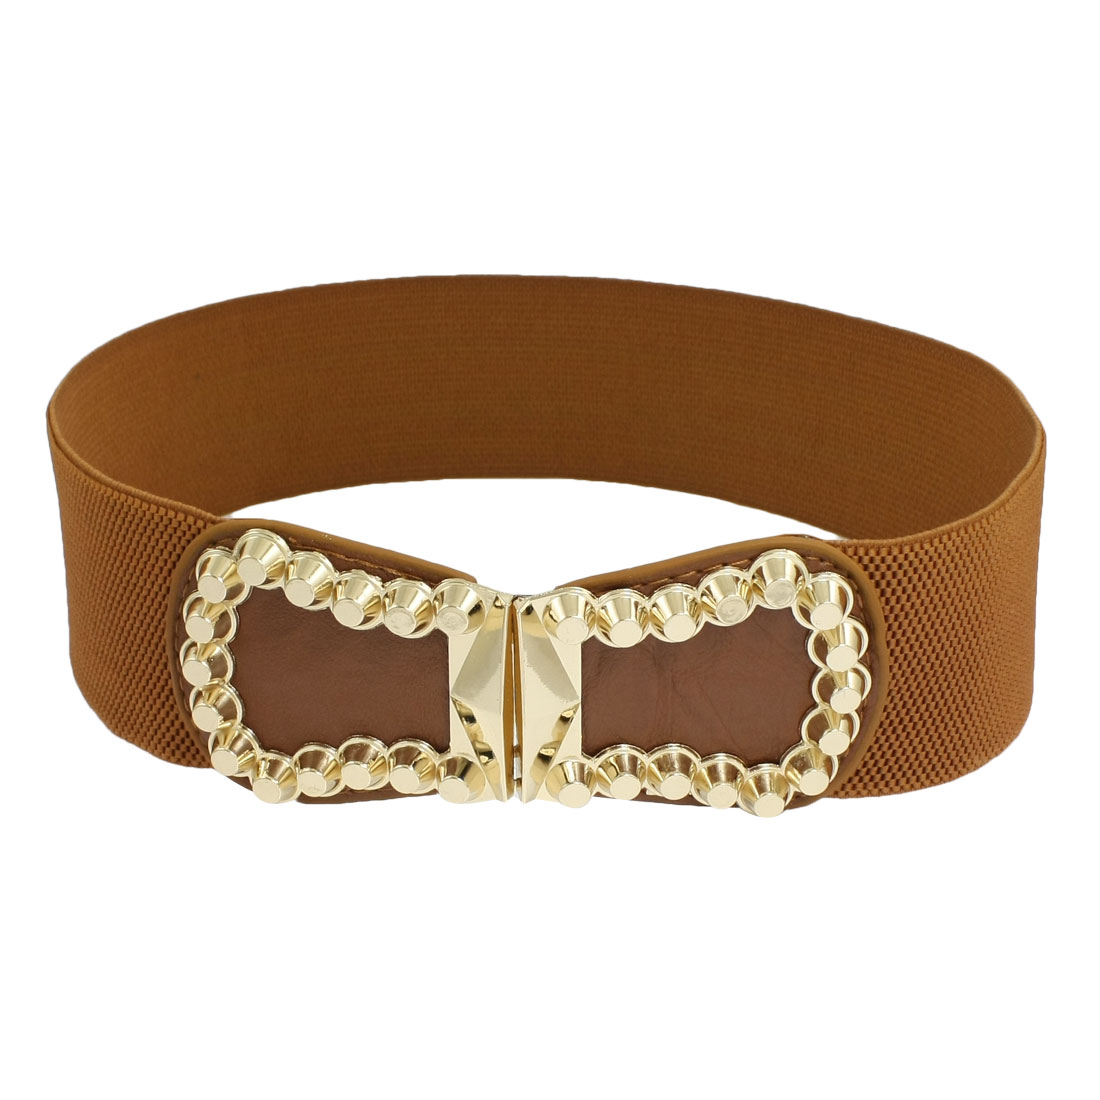 Lady Metal 8 Shape Interlocking Buckle Stretchy Waist Cinch Belt Brown